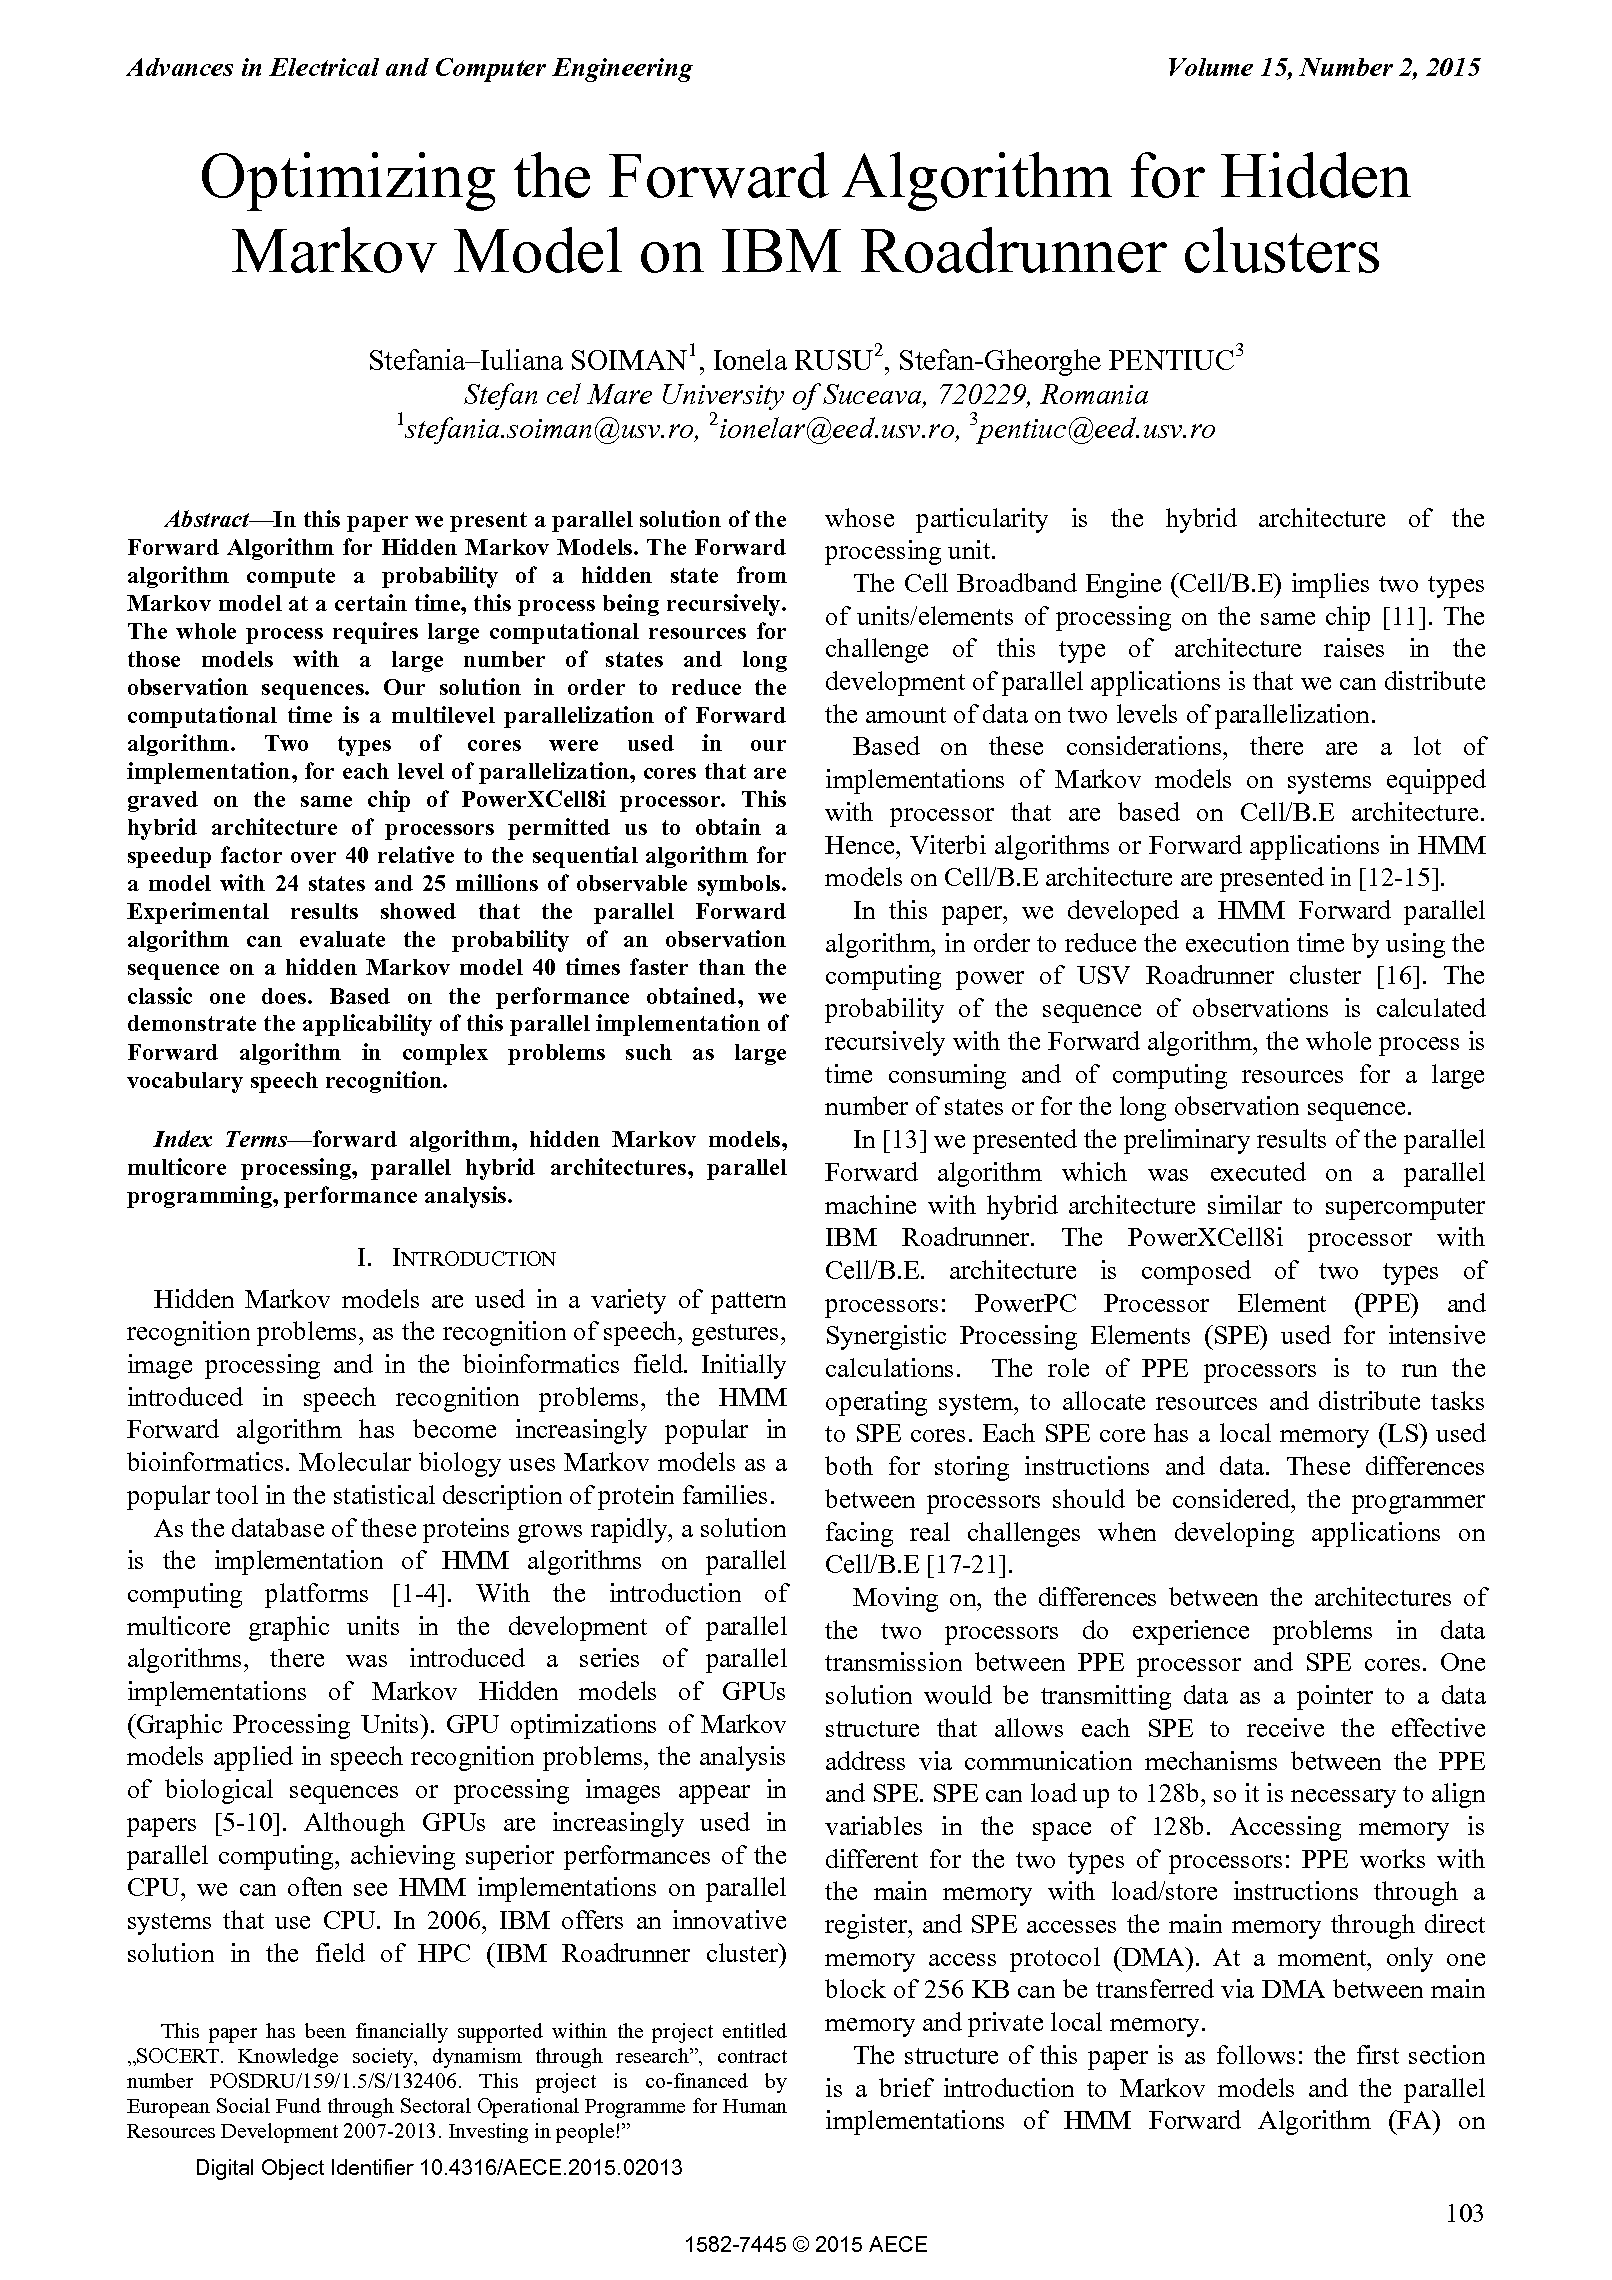 PDF Quickview for paper with DOI:10.4316/AECE.2015.02013